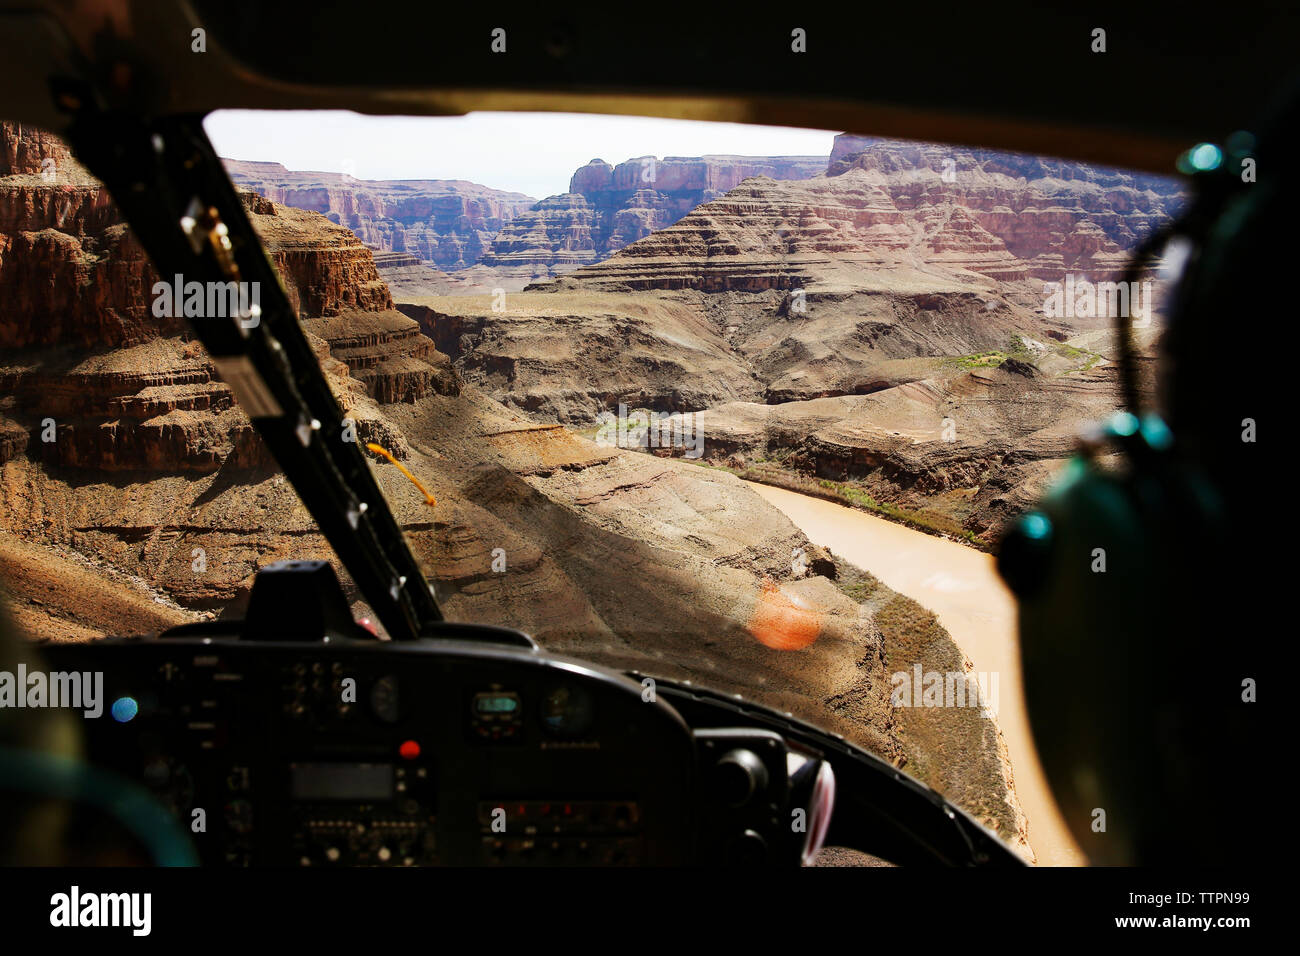 View of mountain ranges seen from helicopter cockpit - Stock Image